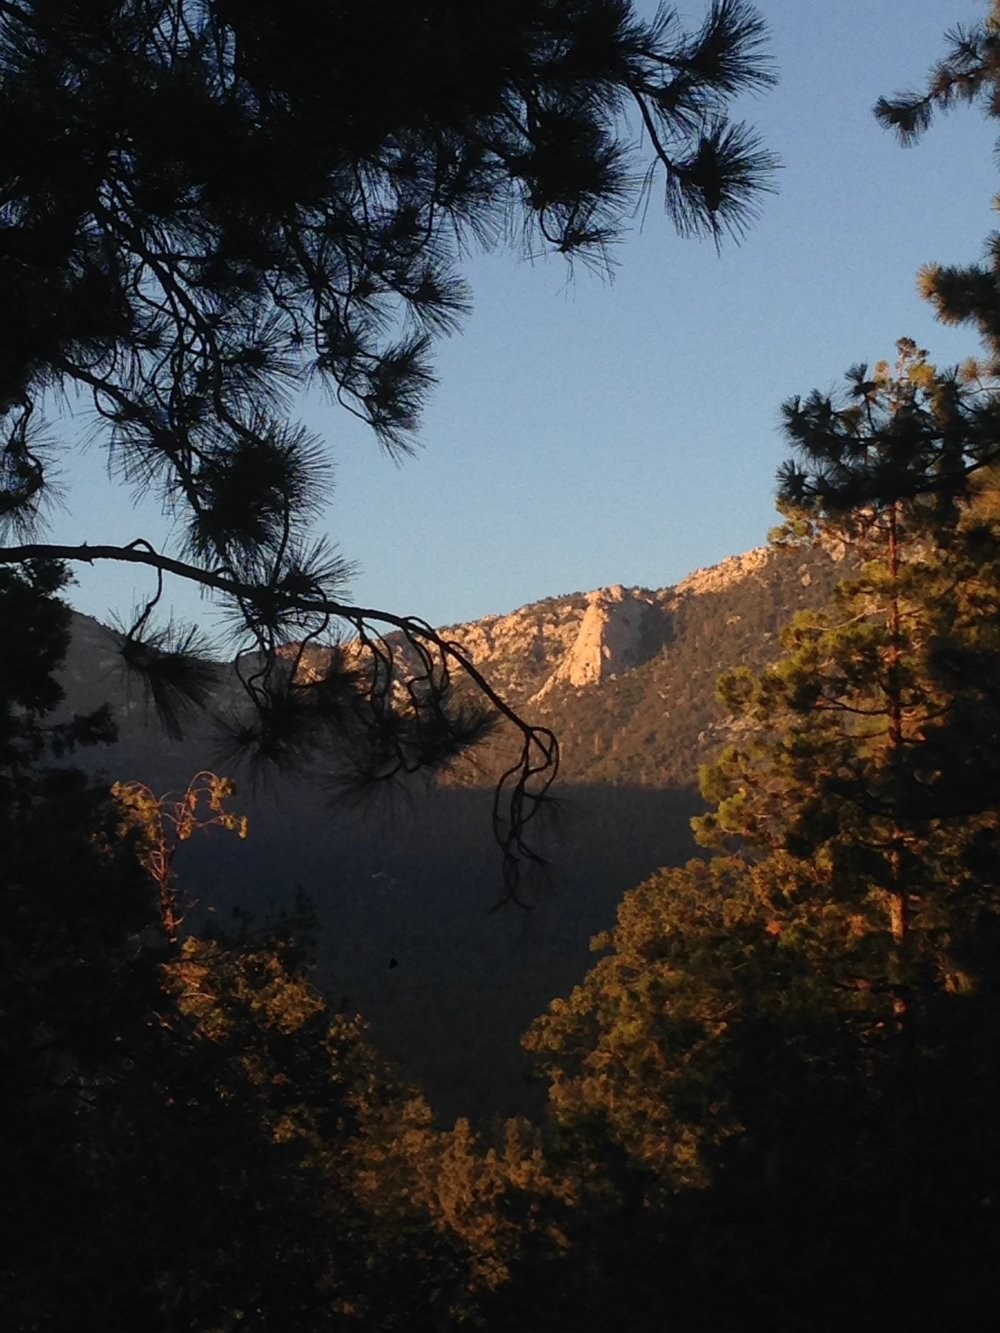 Deck Life: The view of evening Alpineglow hitting Tahquitz Rock from the Girls Gone IdyllWEED Cabin in Idyllwild, CA.